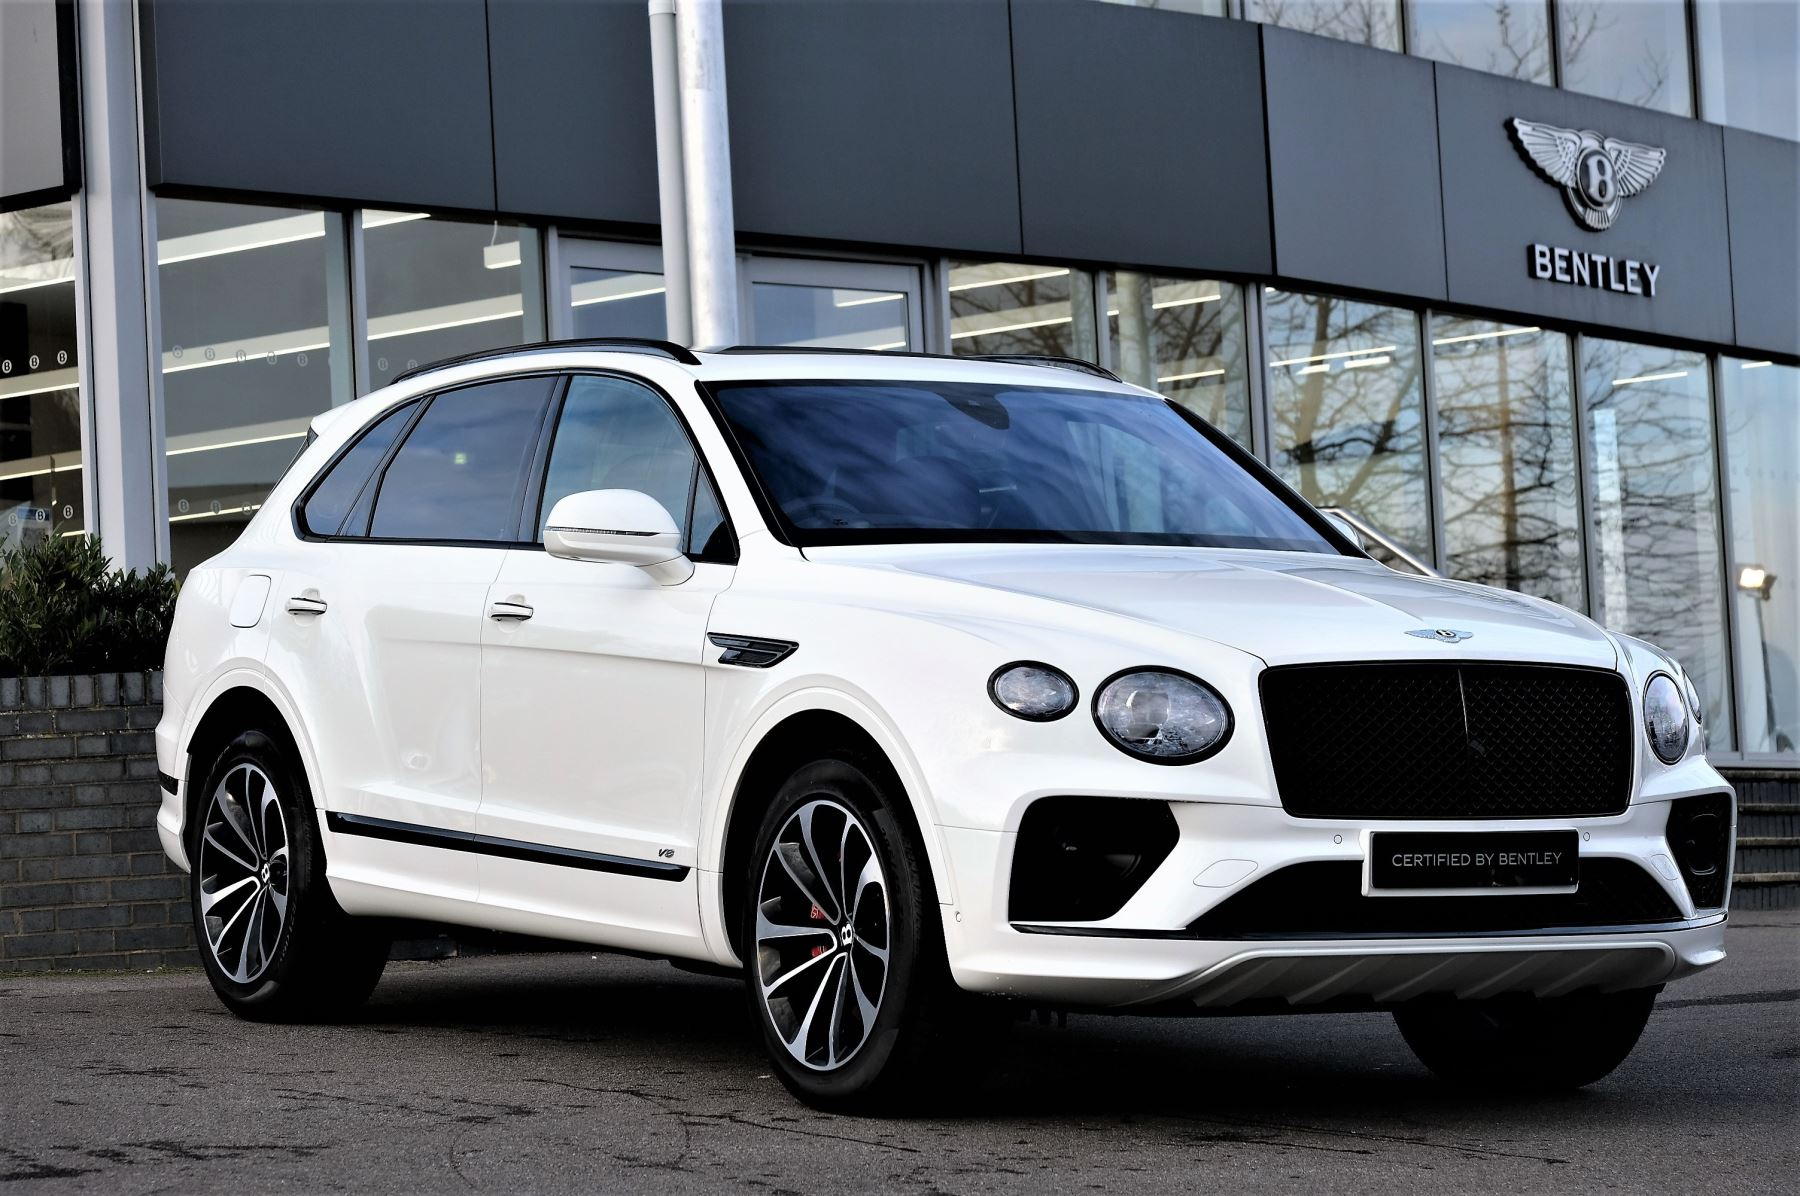 Bentley Bentayga 4.0 V8 - Touring and Front Seat Comfort Specification  image 1